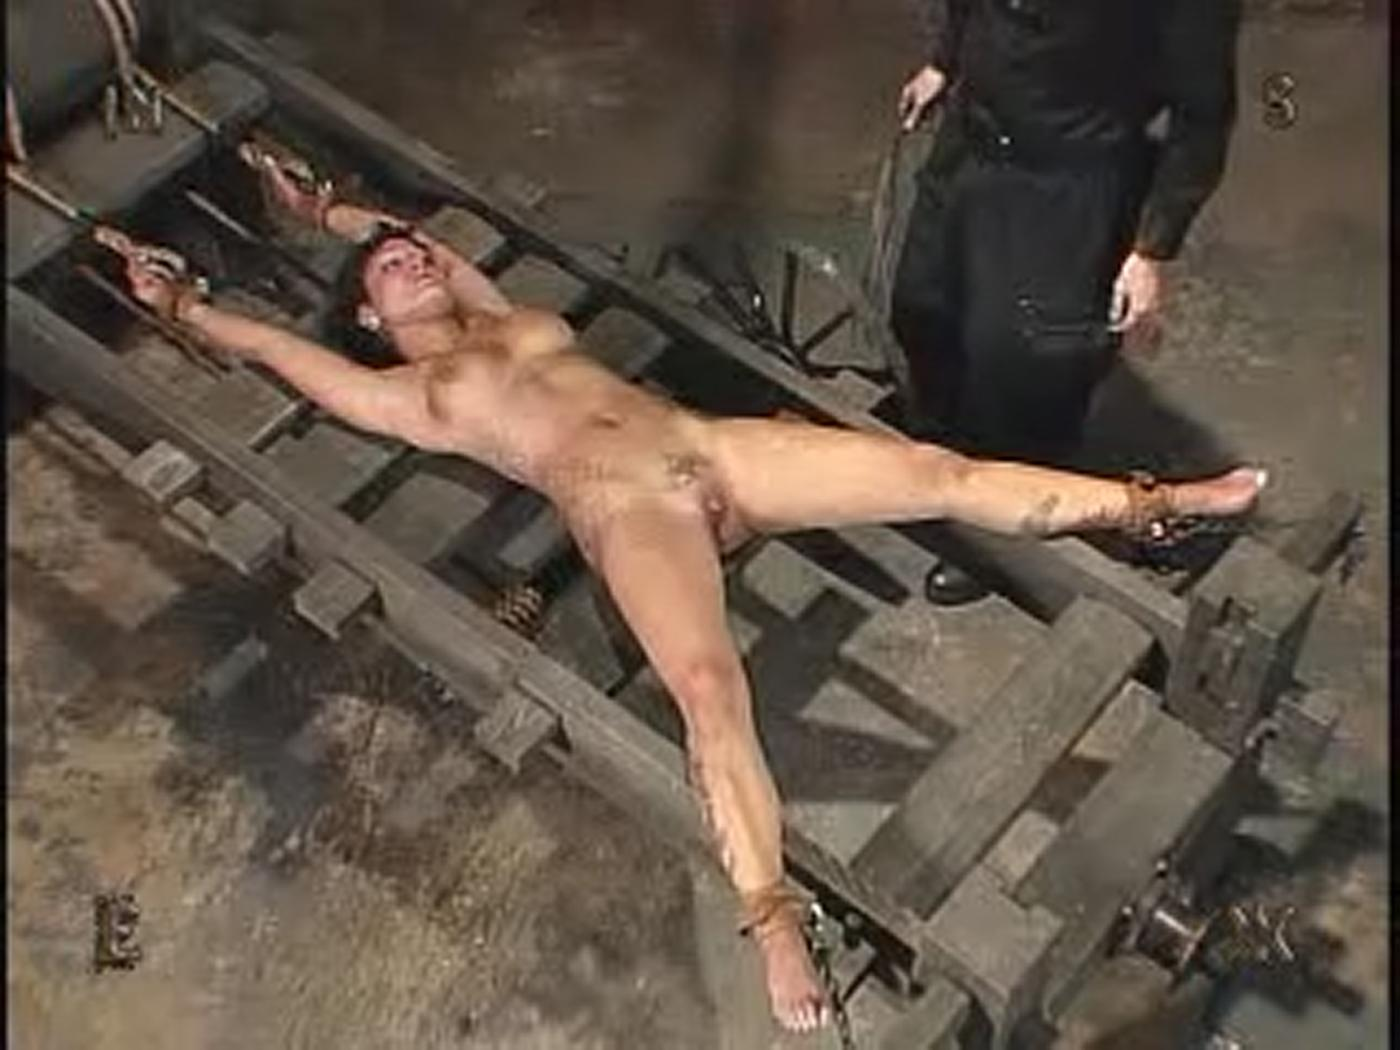 Bondage spread eagle fucked hard and hairy 6